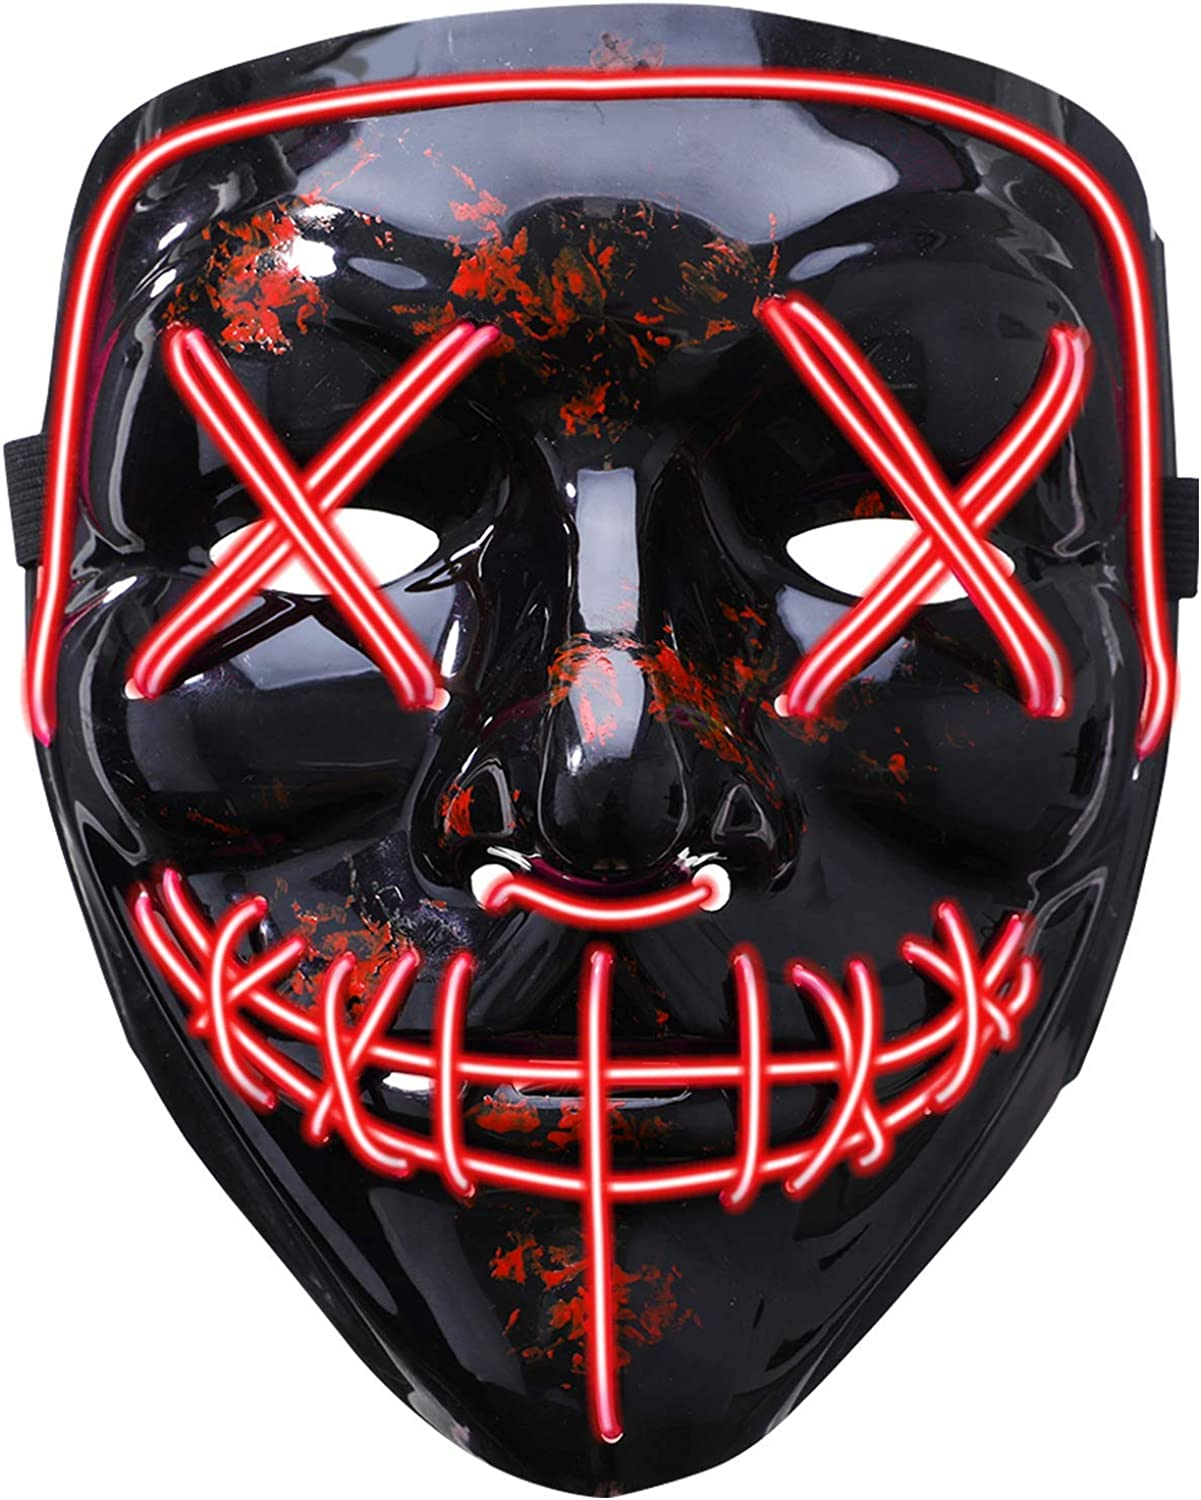 GLIME LED Max 60% OFF Mask Halloween Ranking TOP12 Scary Cosplay Led for Costume